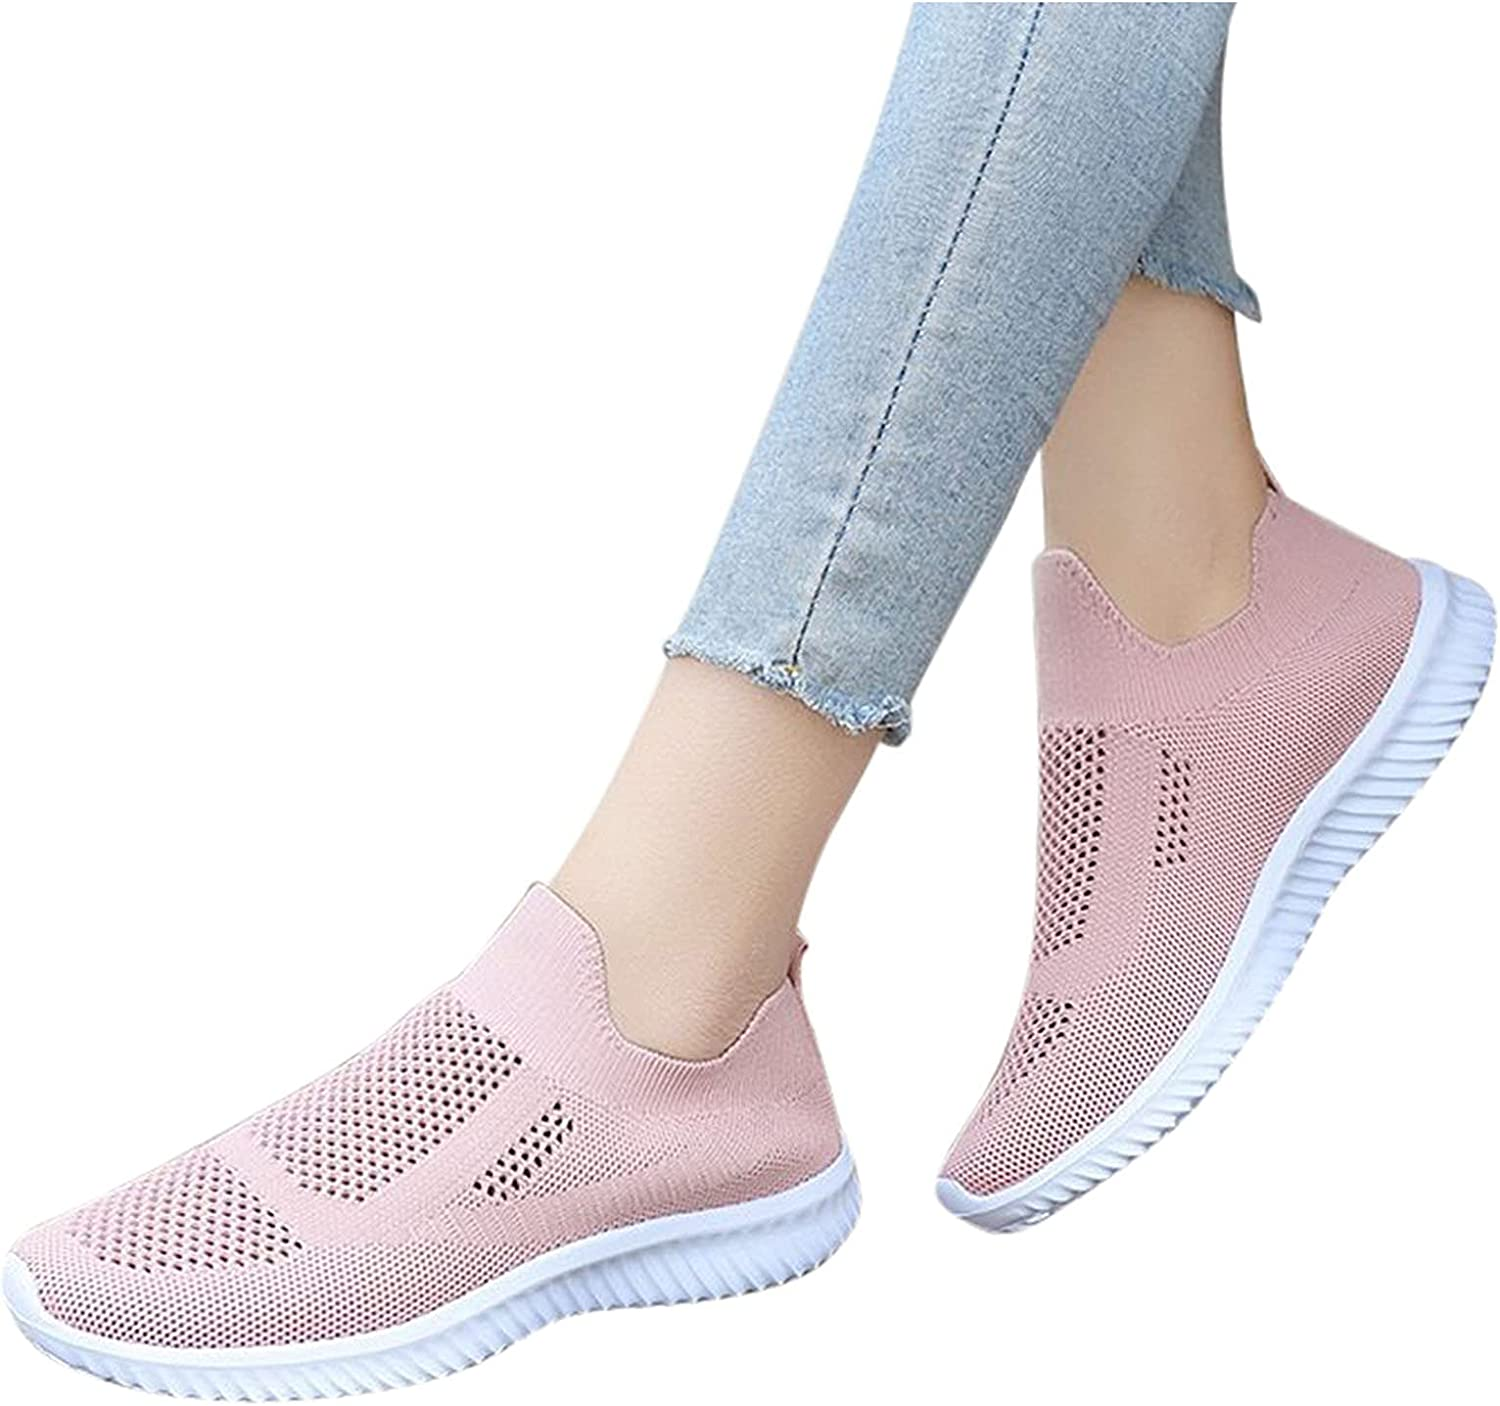 Hbeylia Women's Walking Shoes Slip On Sock Sneakers Fashion Lightweight Knit Outdoor Running Hiking Tennis Sneakers Athletic Shoes For Women Men Workout Gym Driving Nursing Working